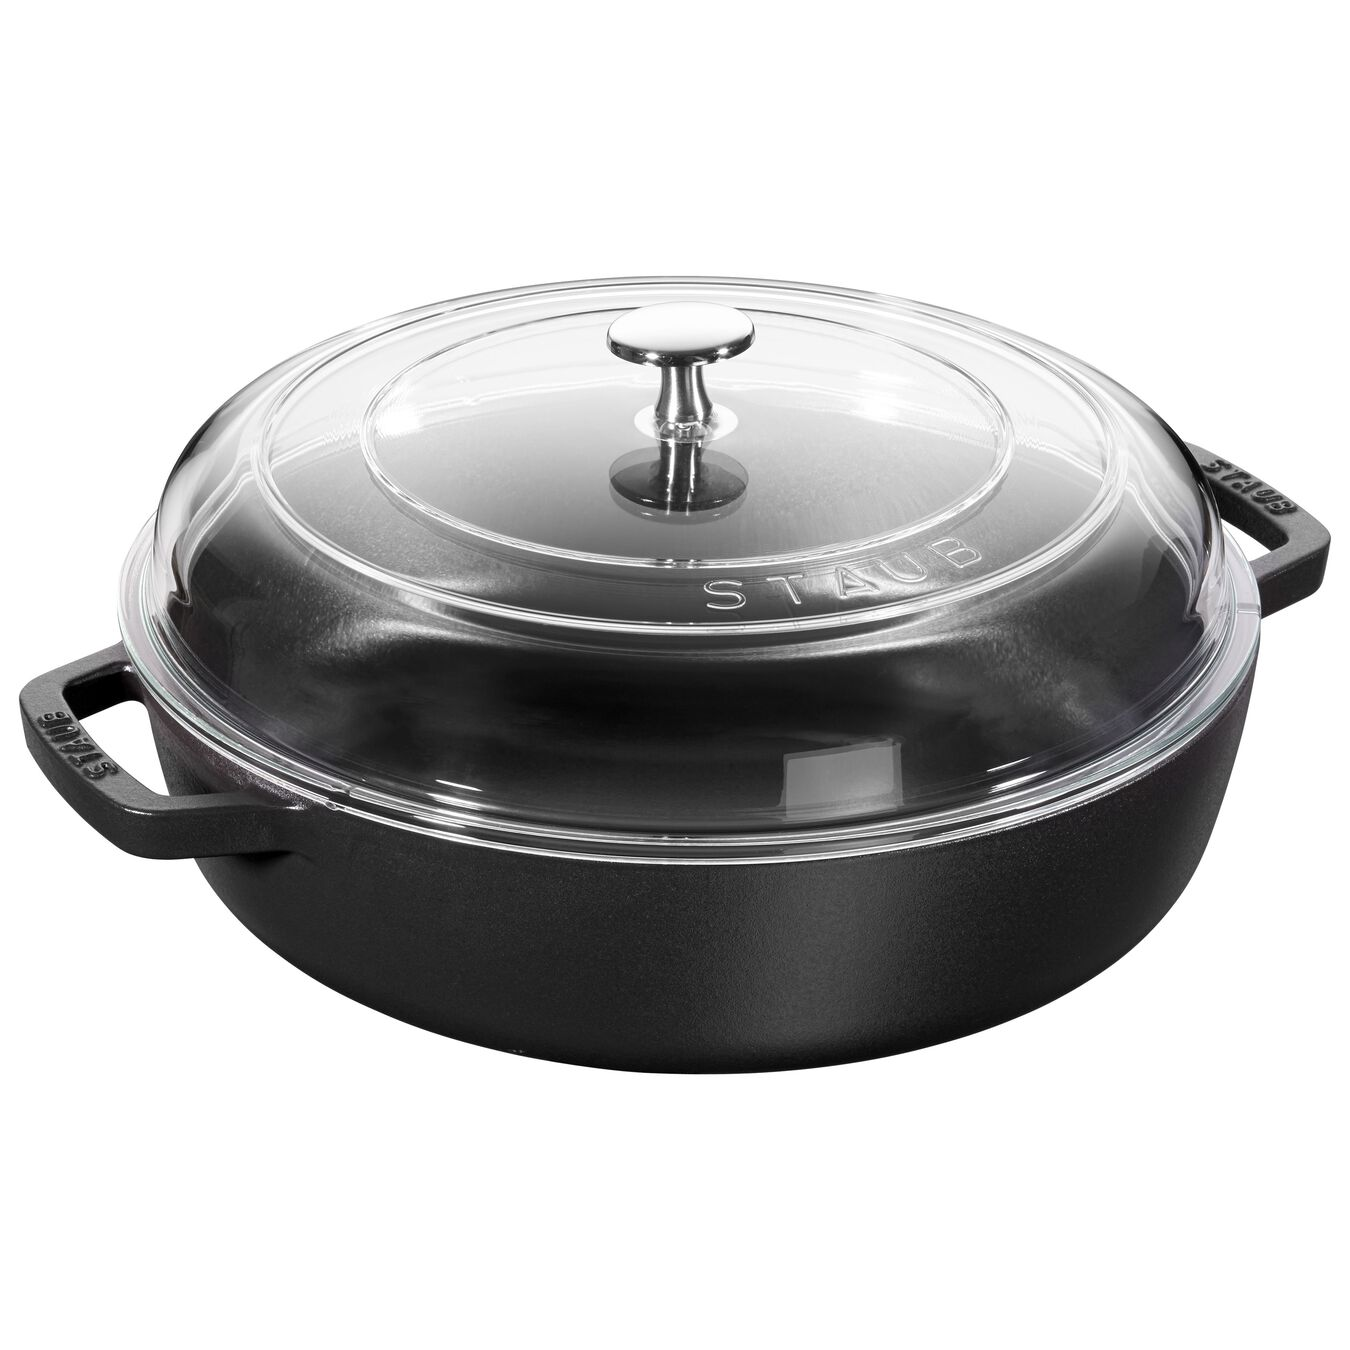 Sauteuse with glass lid 24 cm, Fonte,,large 1